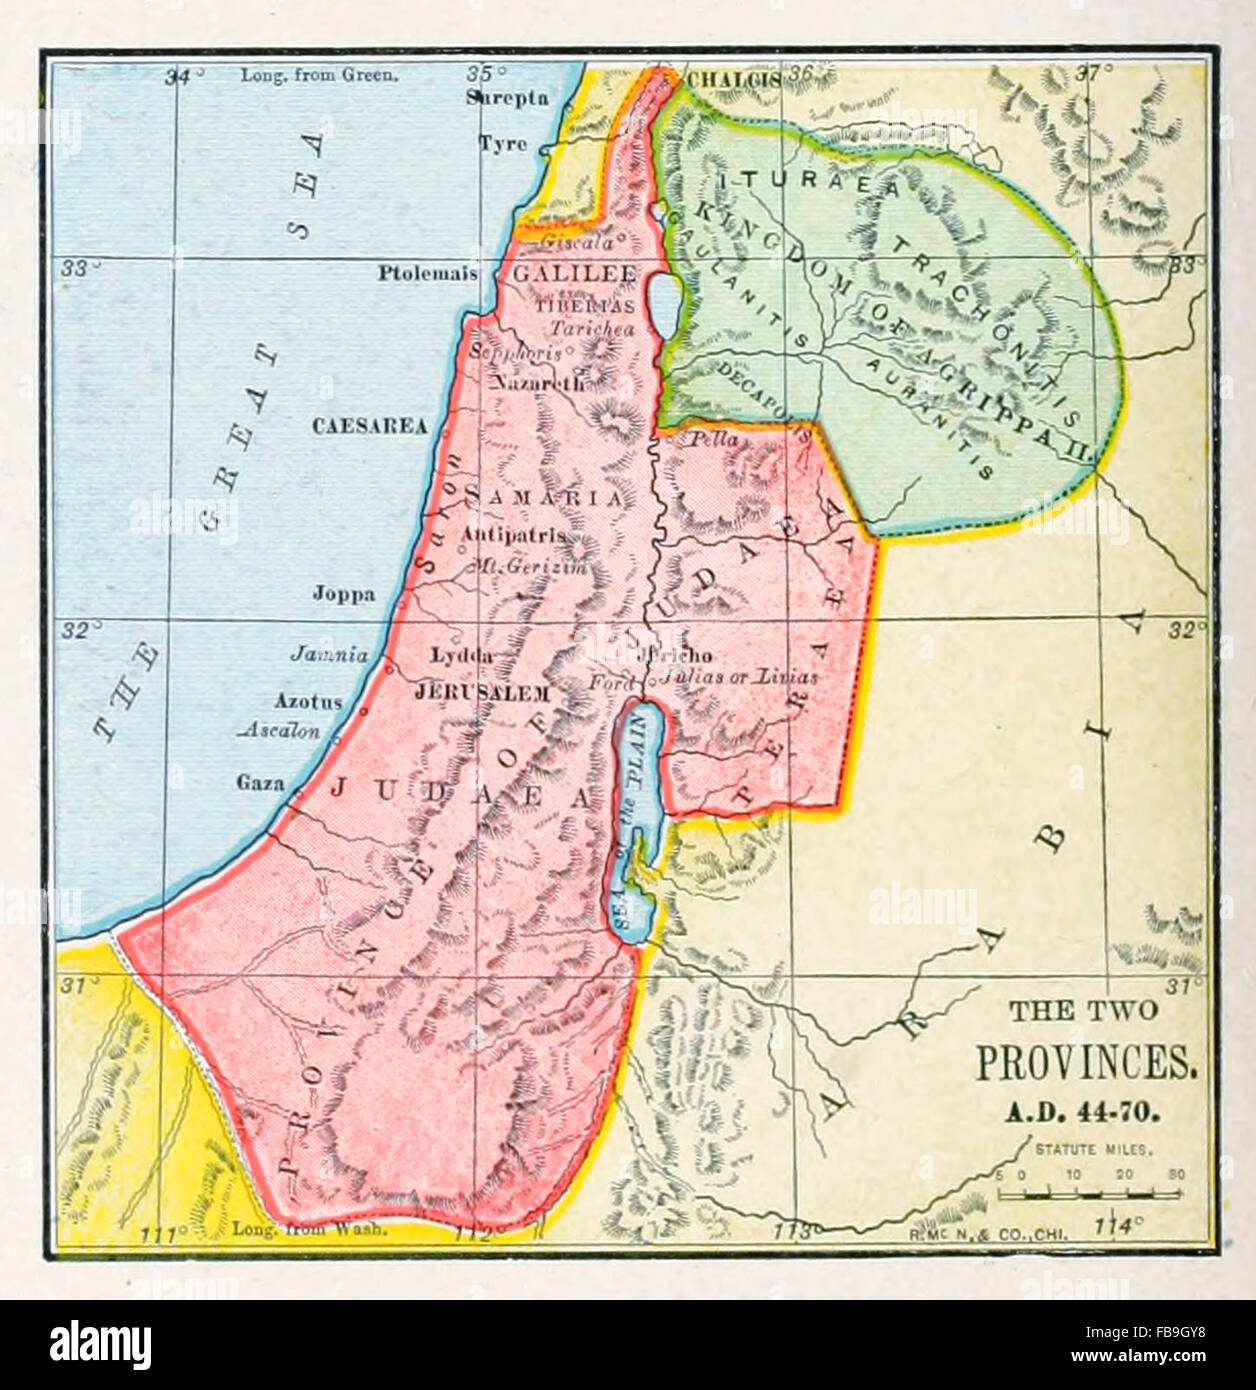 Map of the Two Provinces of Palestine AD 44 - 70 - Stock Image